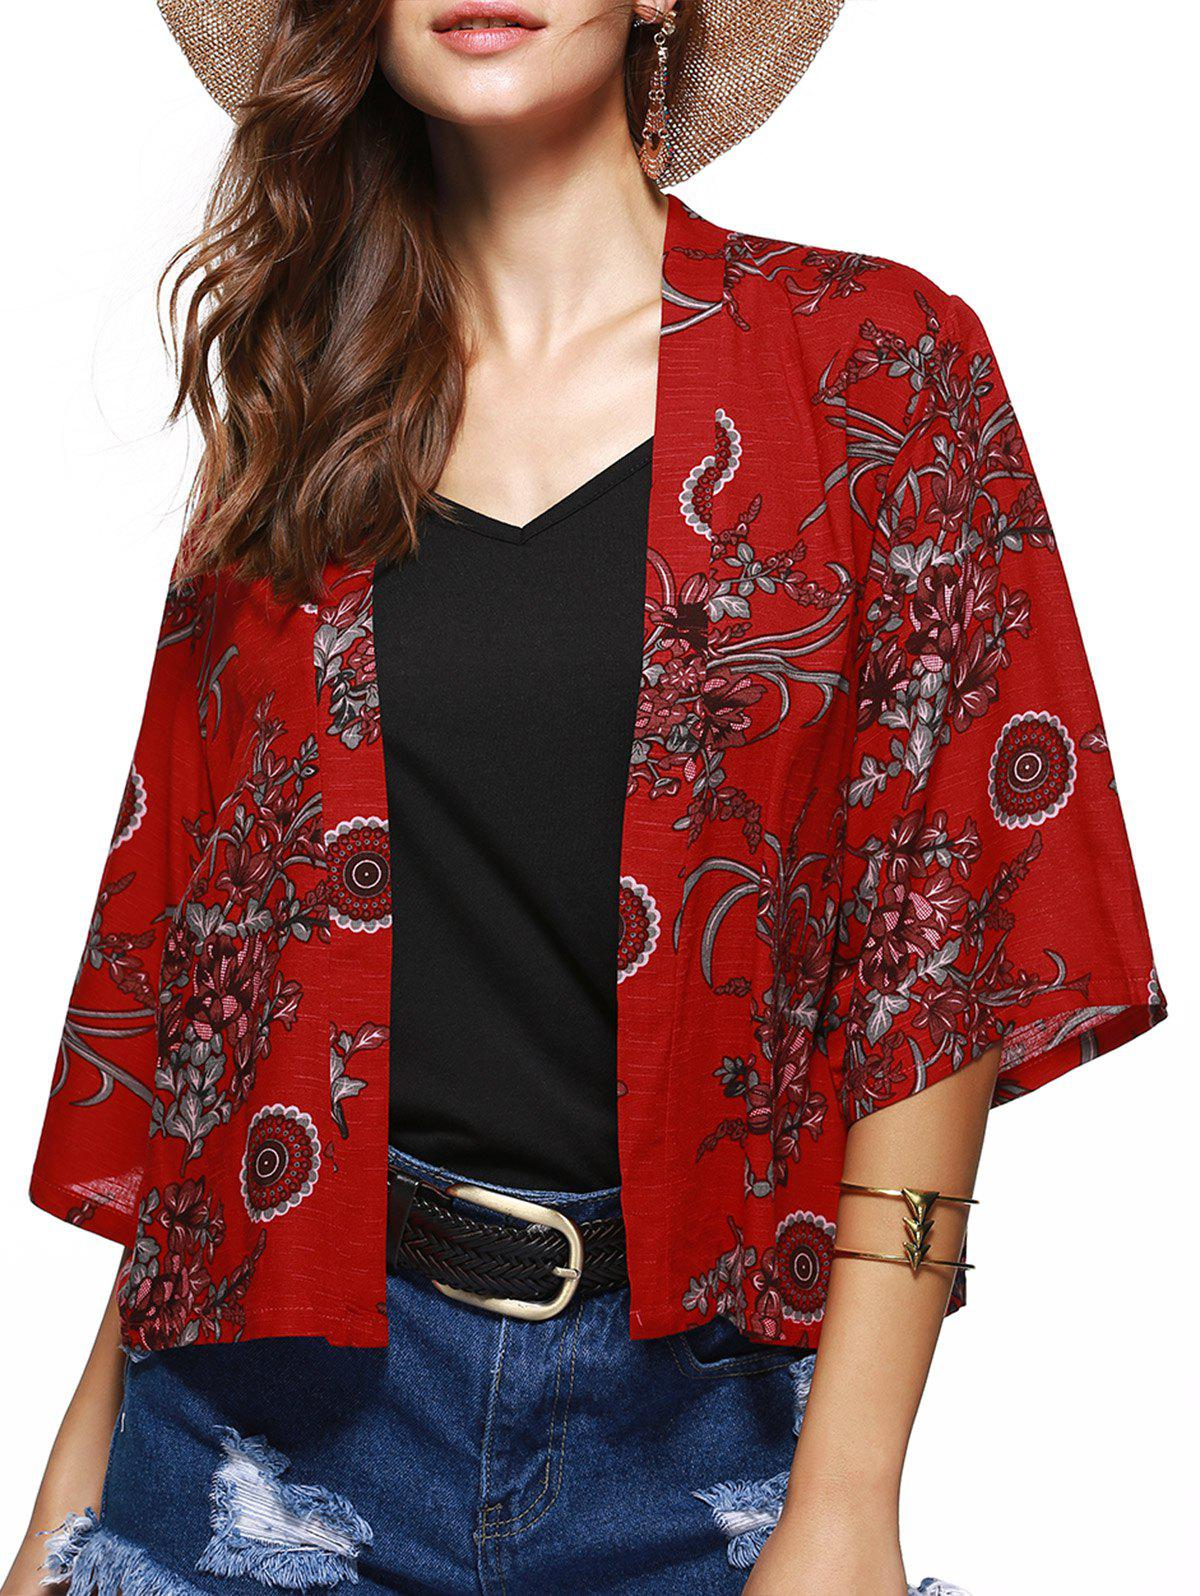 Flower Ethnic Jacquard Print Collarless Short Kimono - RED M